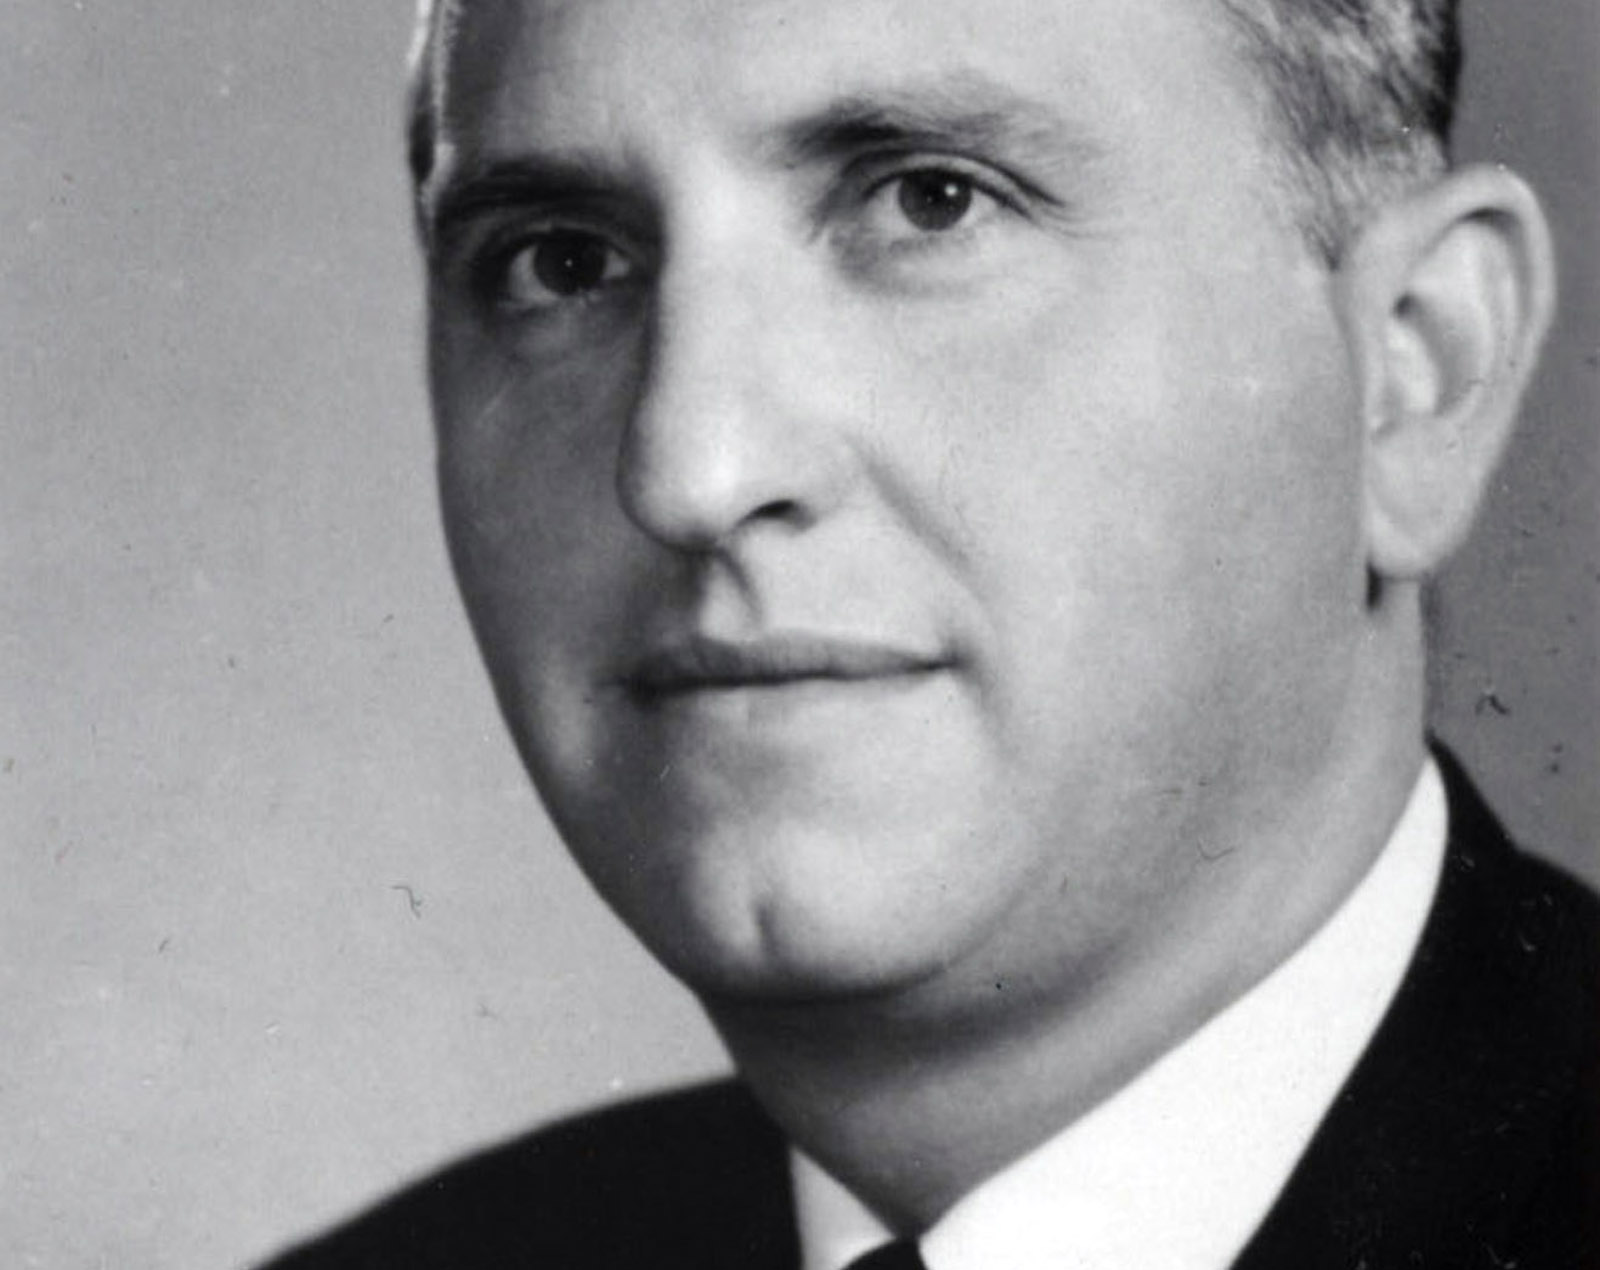 (Tribune file photo) Thomas S. Monson in 1969.